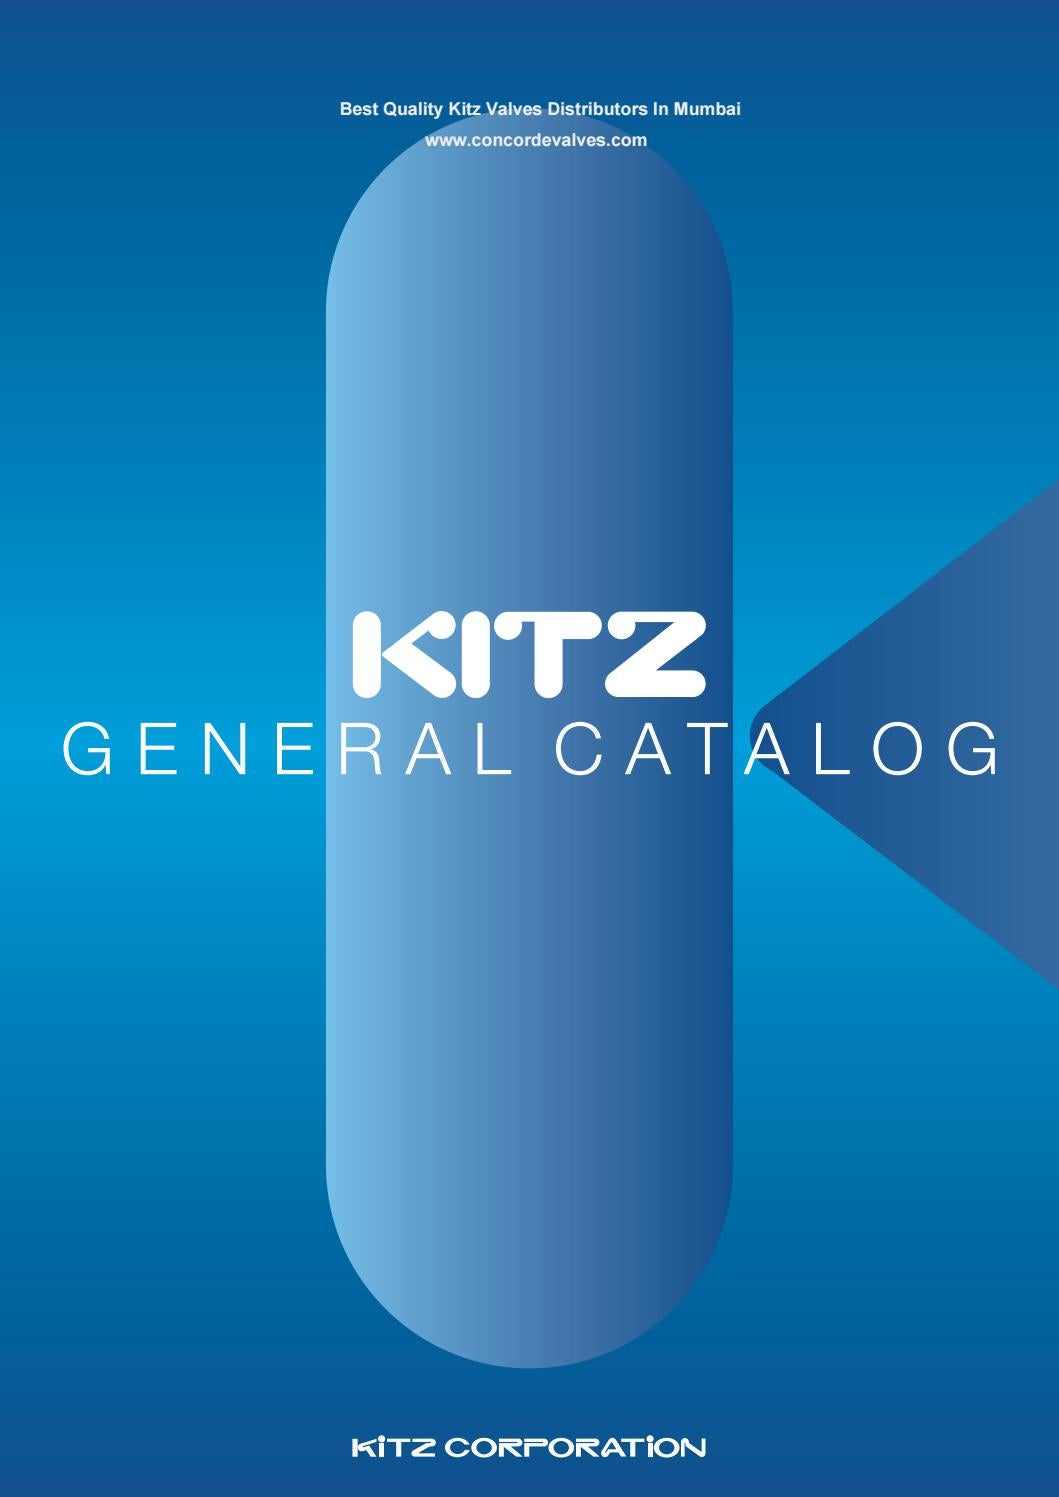 Kitz Valves Catalogue by Concordevalves - issuu